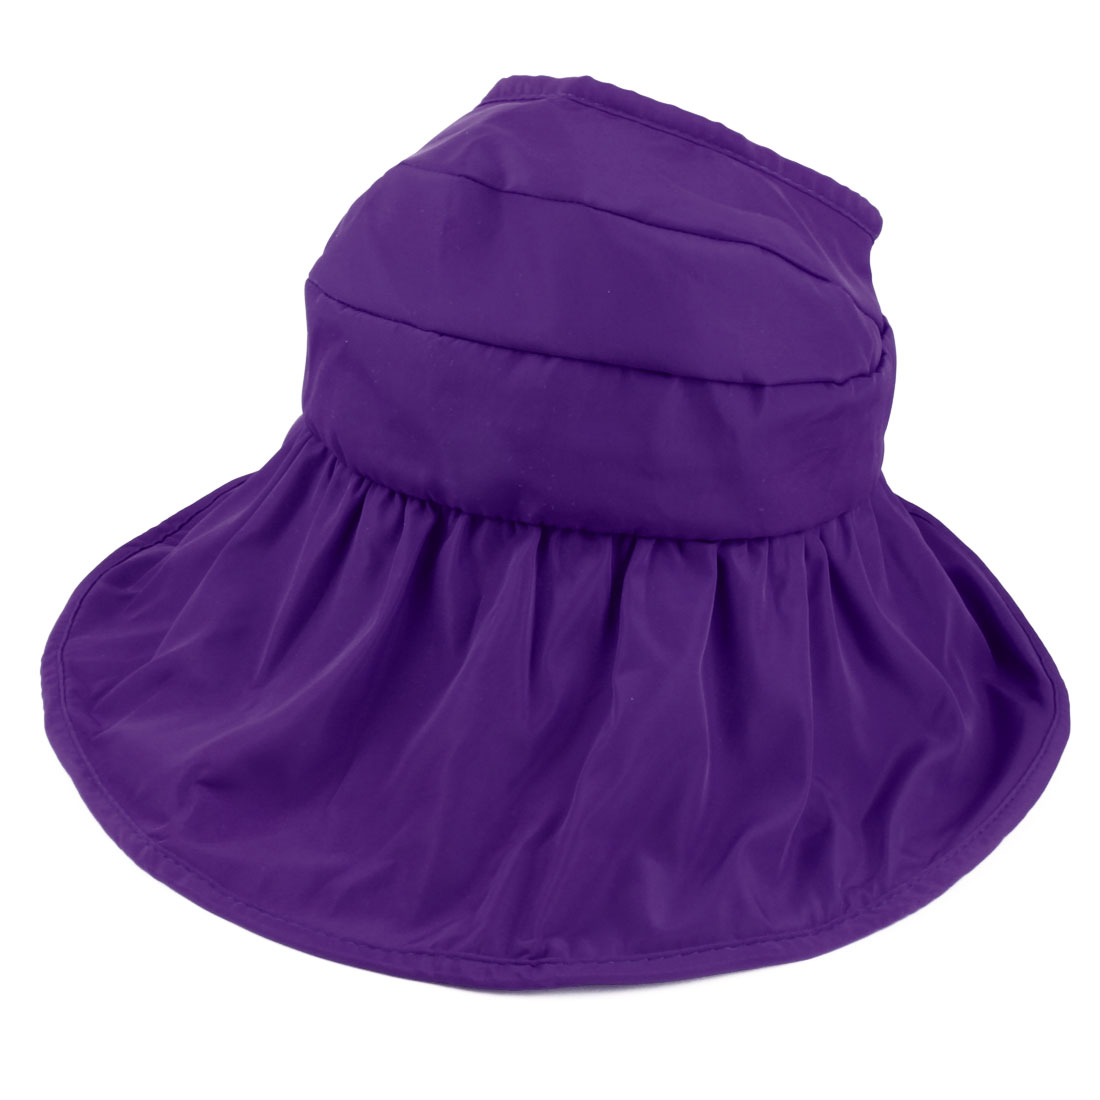 Woman Summer Outdoor Roll Up Wide Floppy Brim Foldable Visor Cap Sun Protector Hat Dark Purple